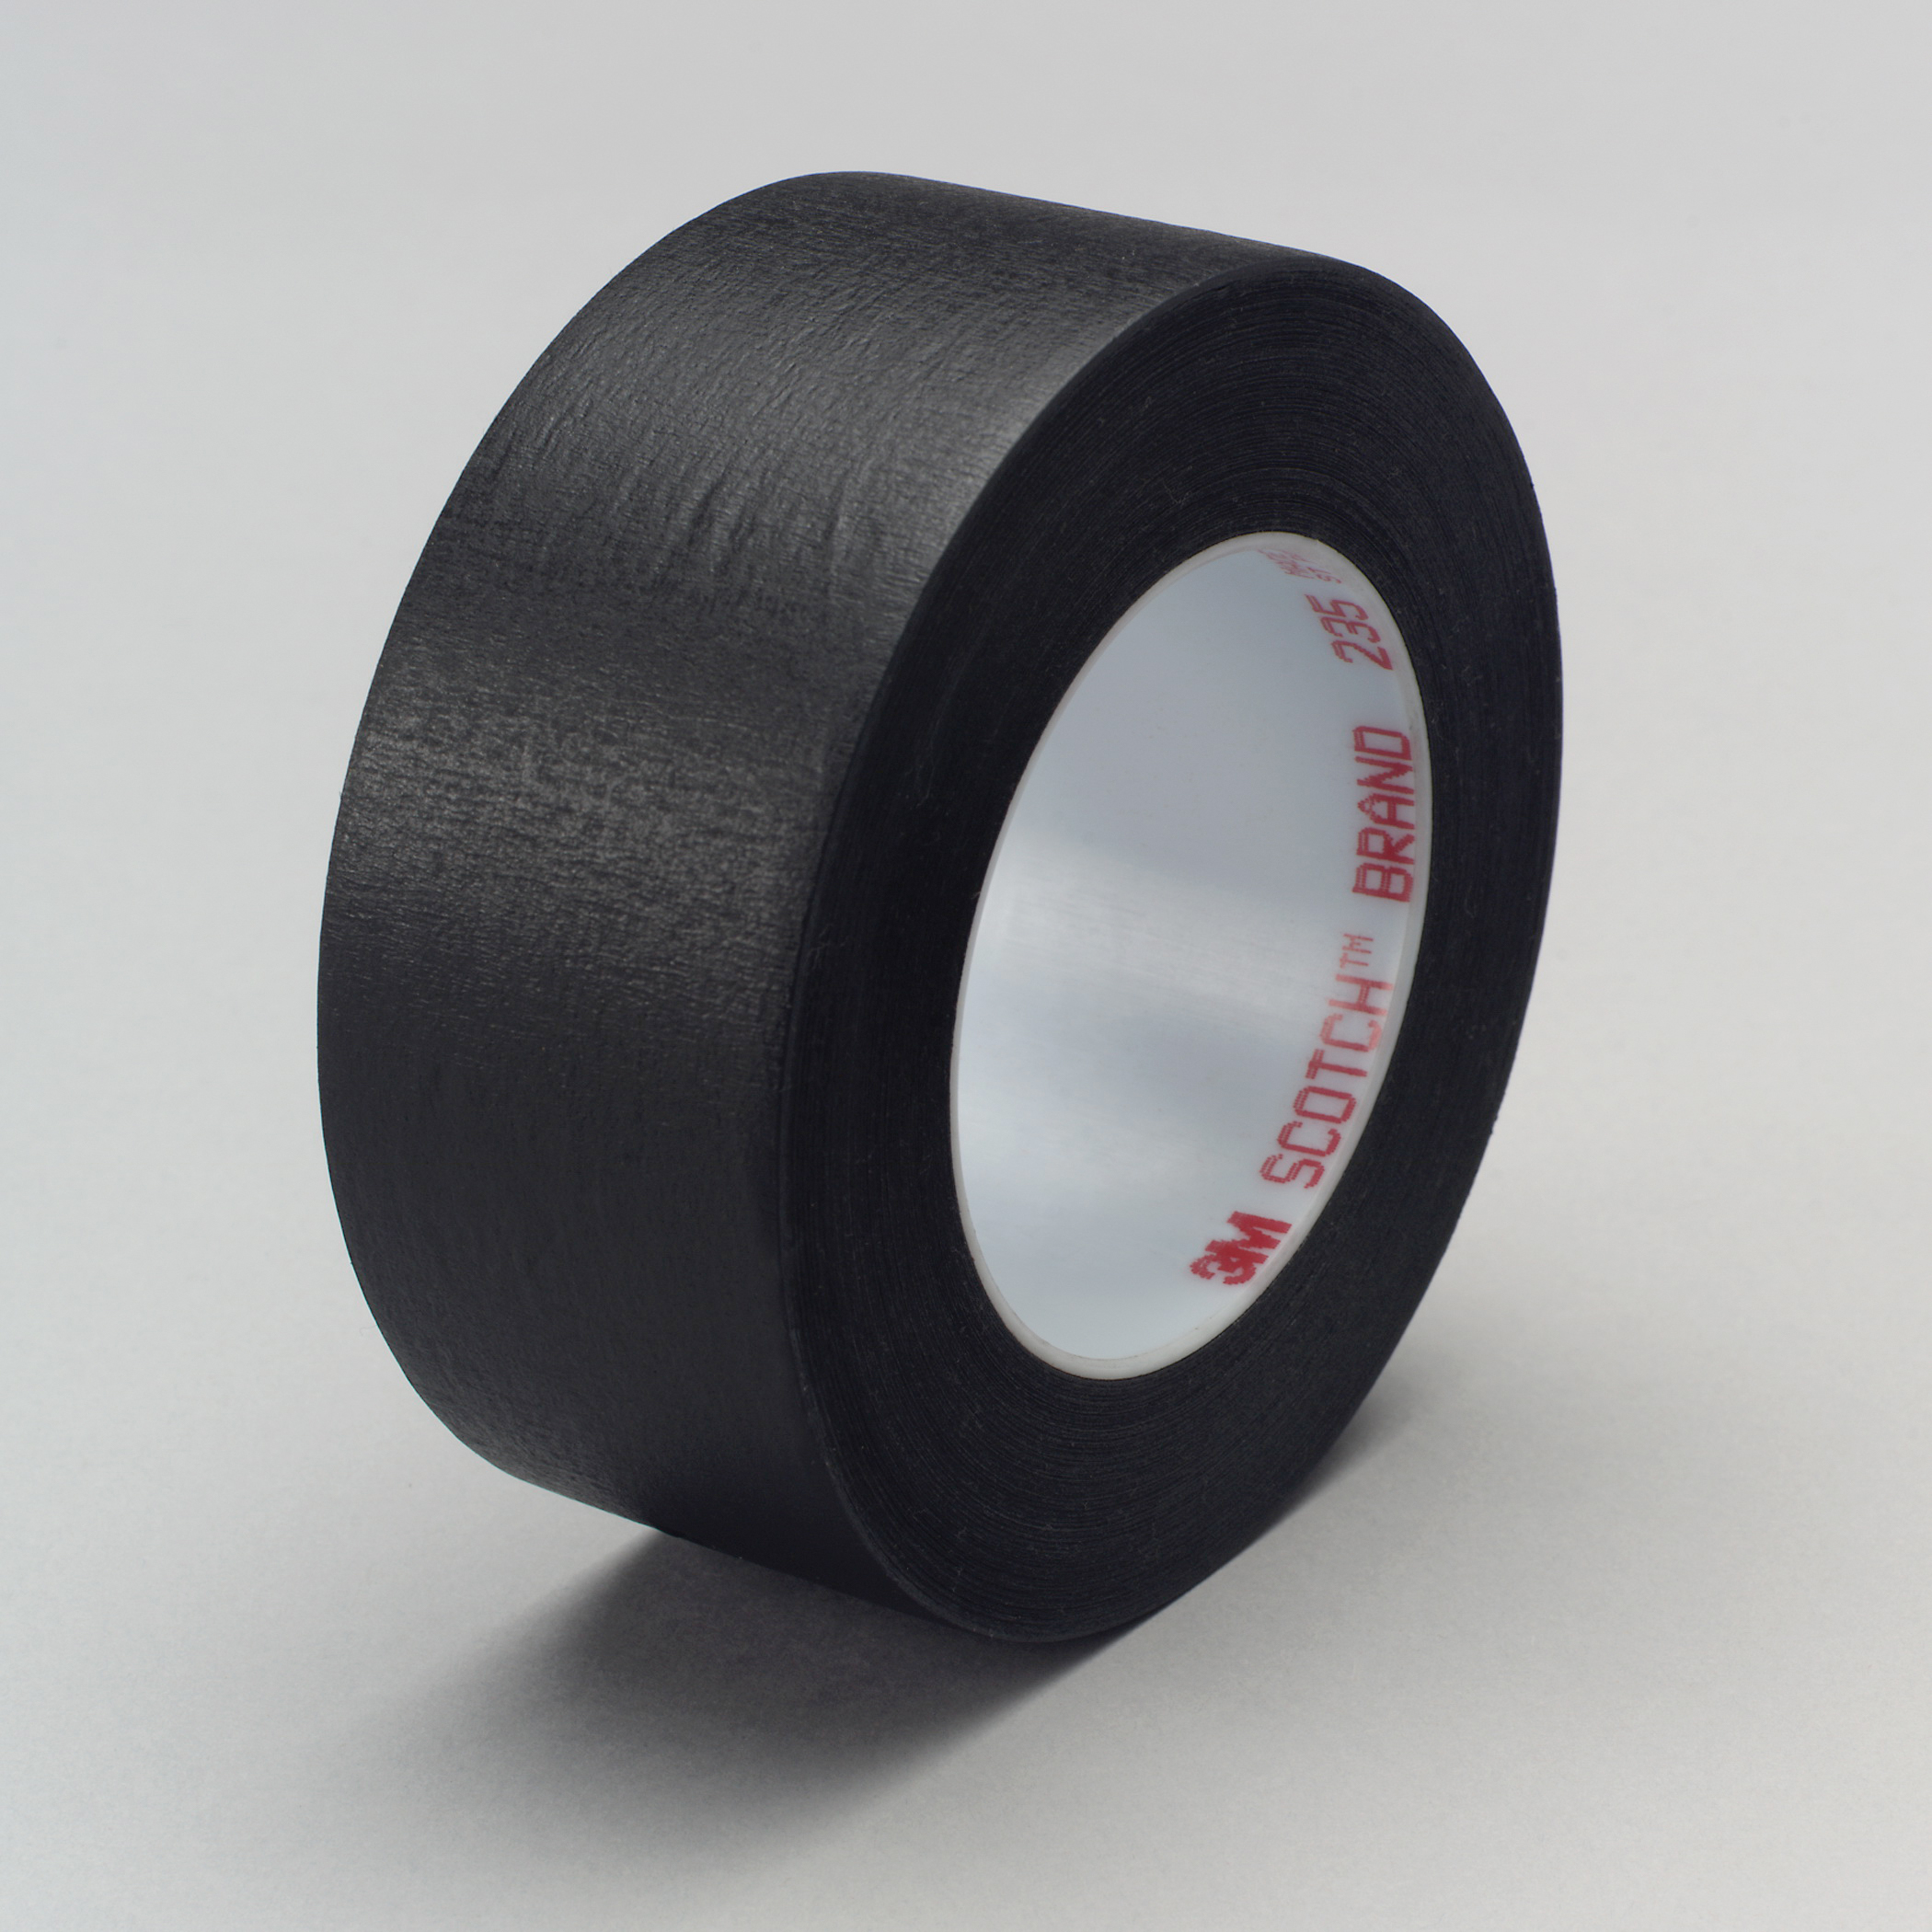 3M™ 021200-07038 Photographic Tape, 60 yd L x 1/2 in W, 7 mil THK, Rubber Adhesive, Crepe Paper Backing, Black